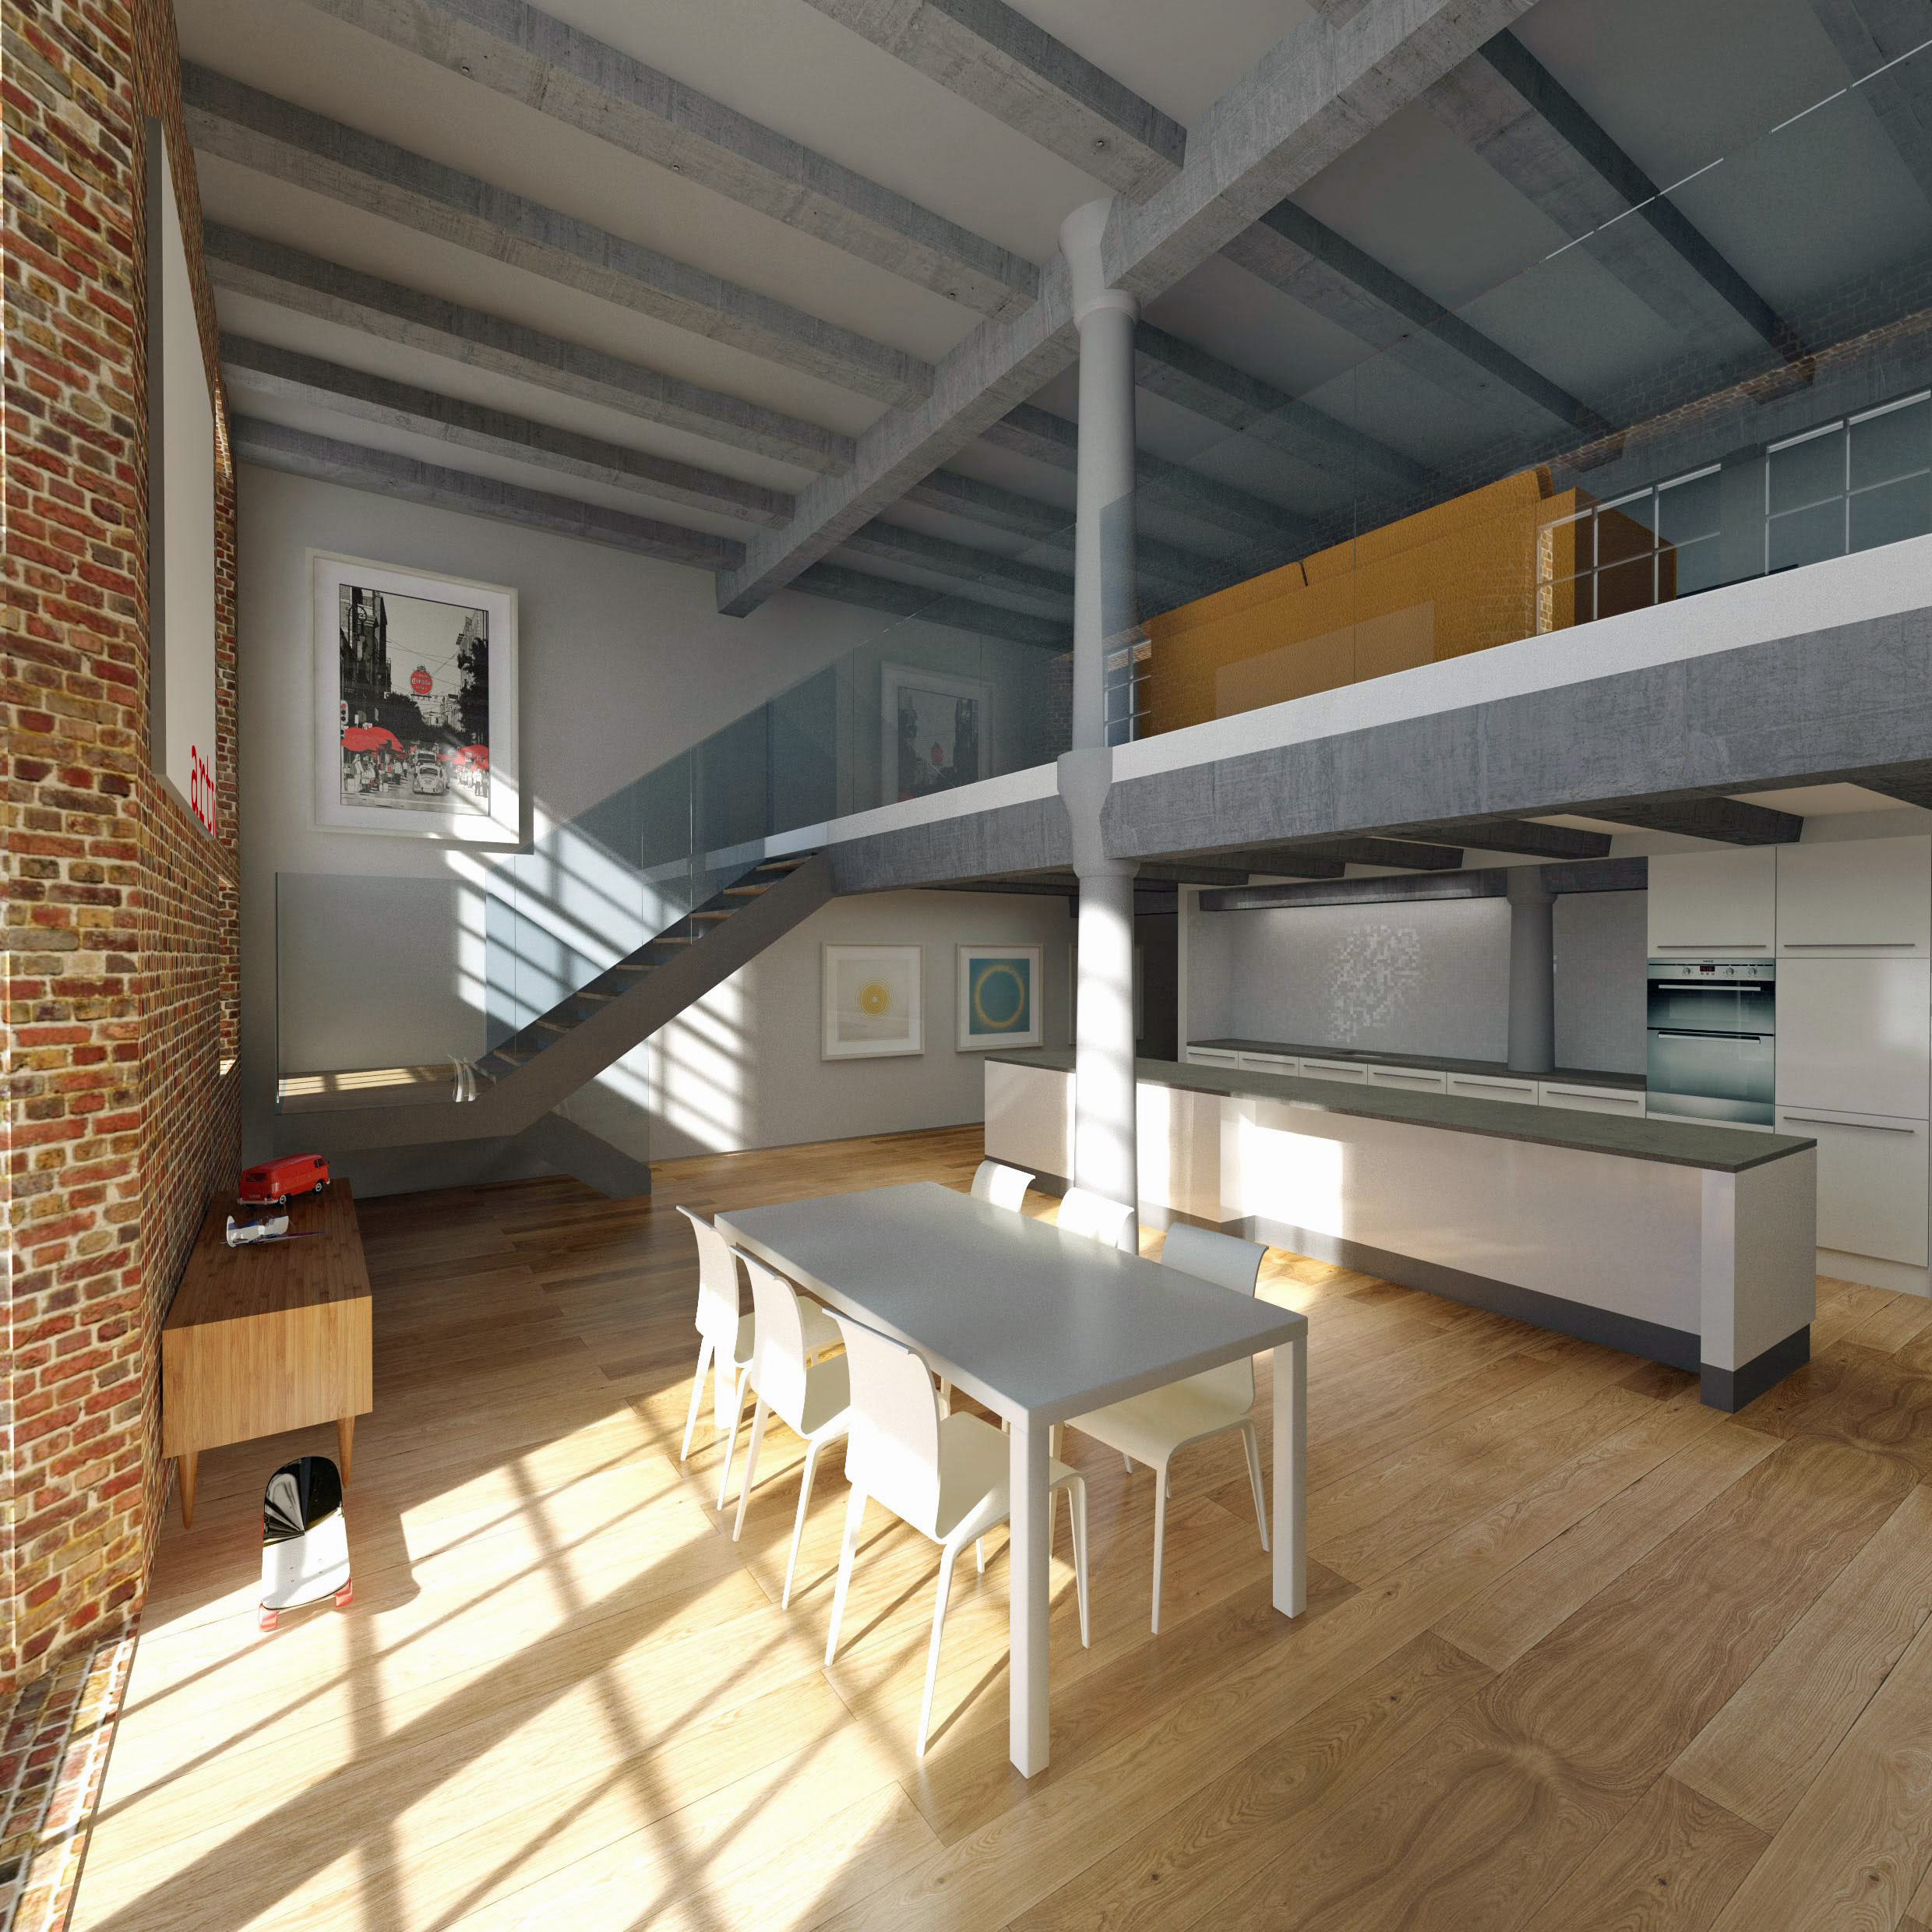 Apartments-interior-Tobacco-Warehouse-2016.jpg